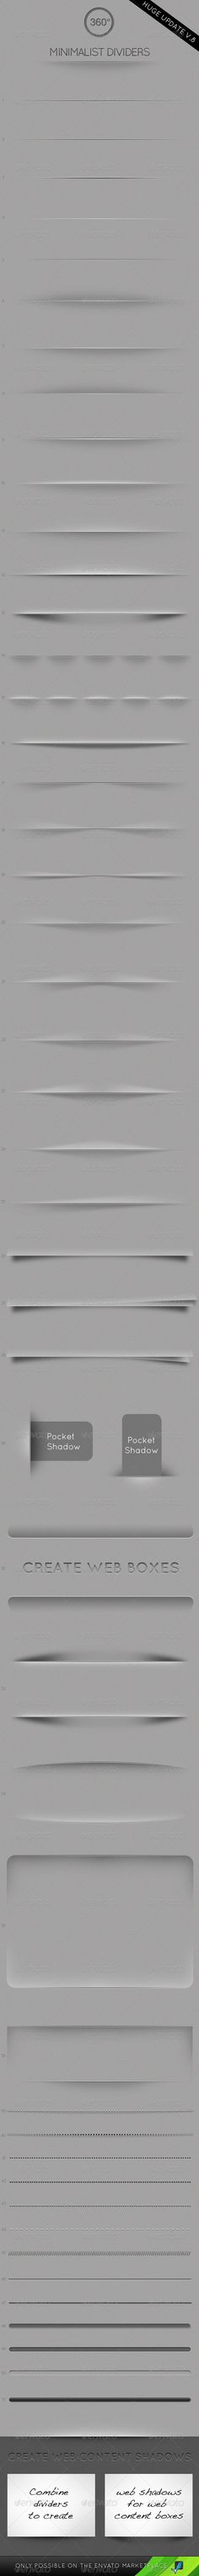 Minimalist Dividers - Resizable  - GraphicRiver Item for Sale